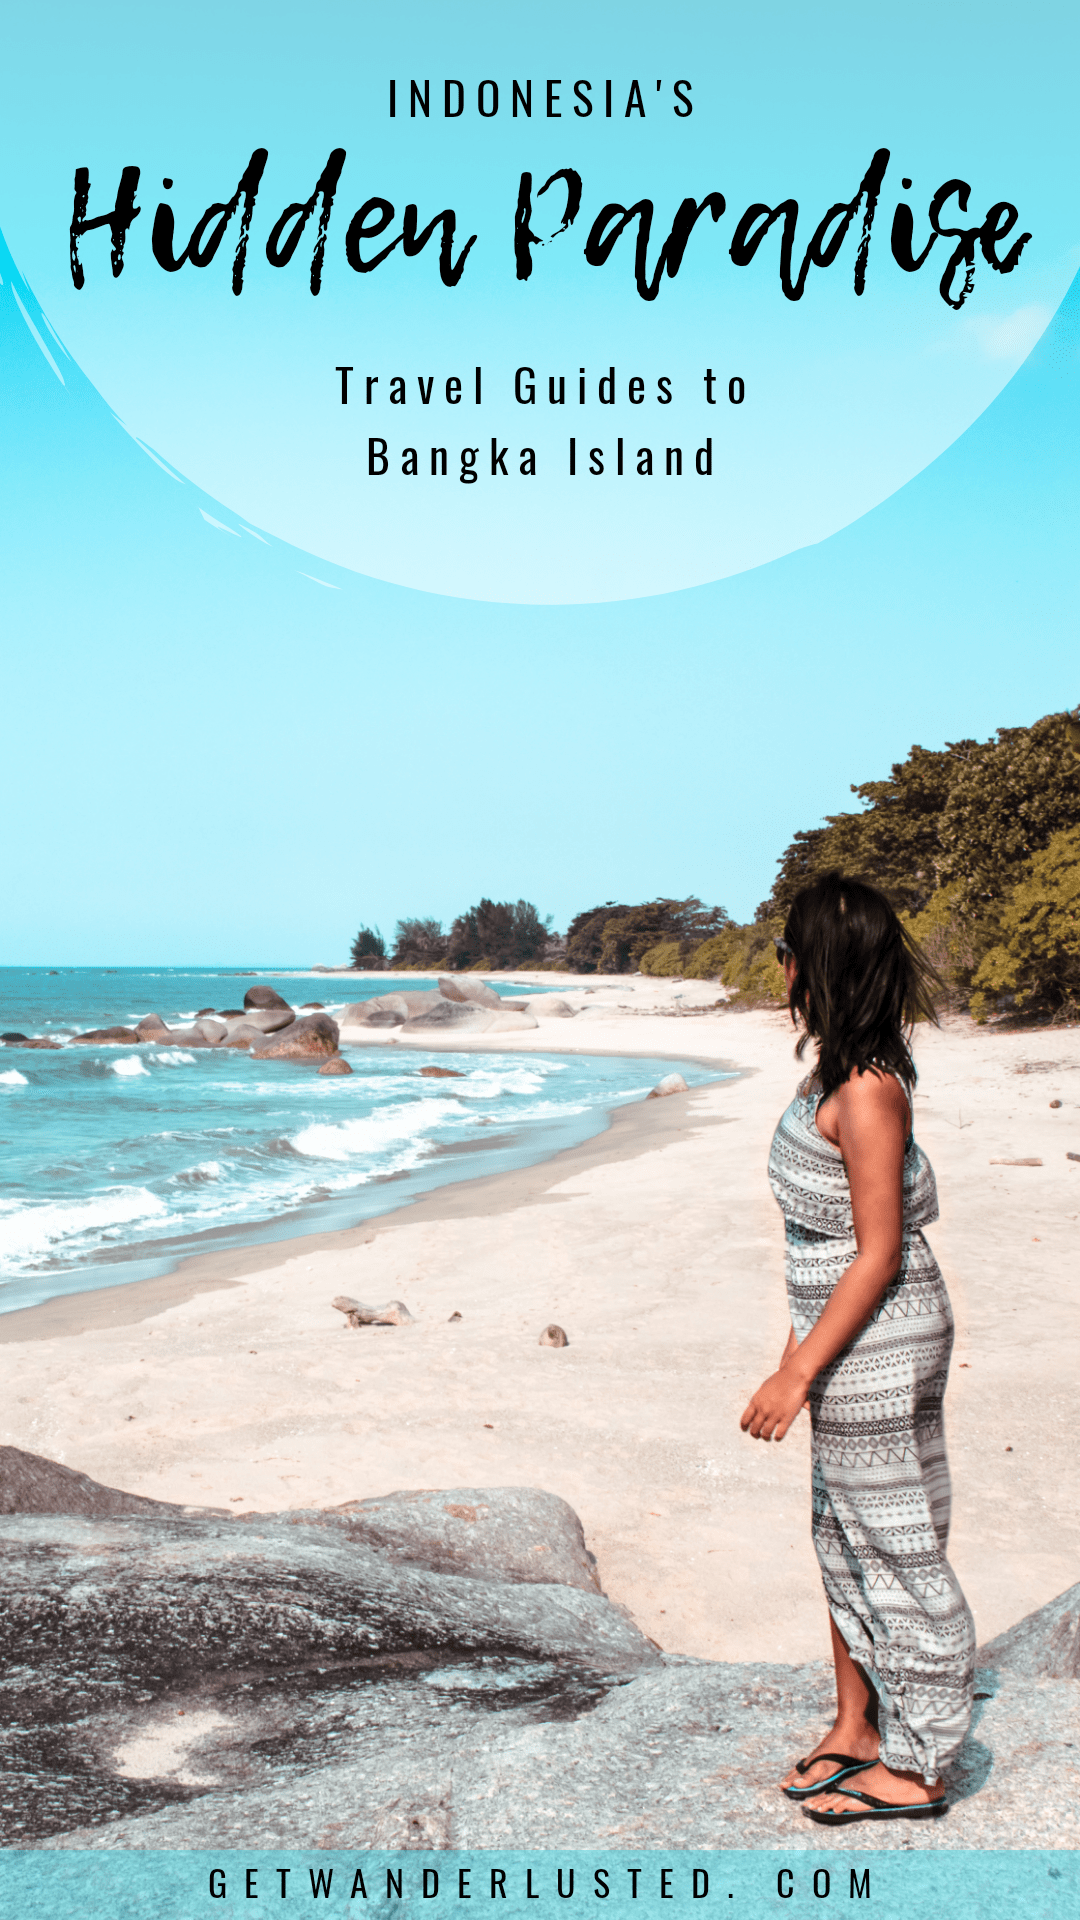 Indonesia's Hidden Paradise: Travel Guides to Bangka Island